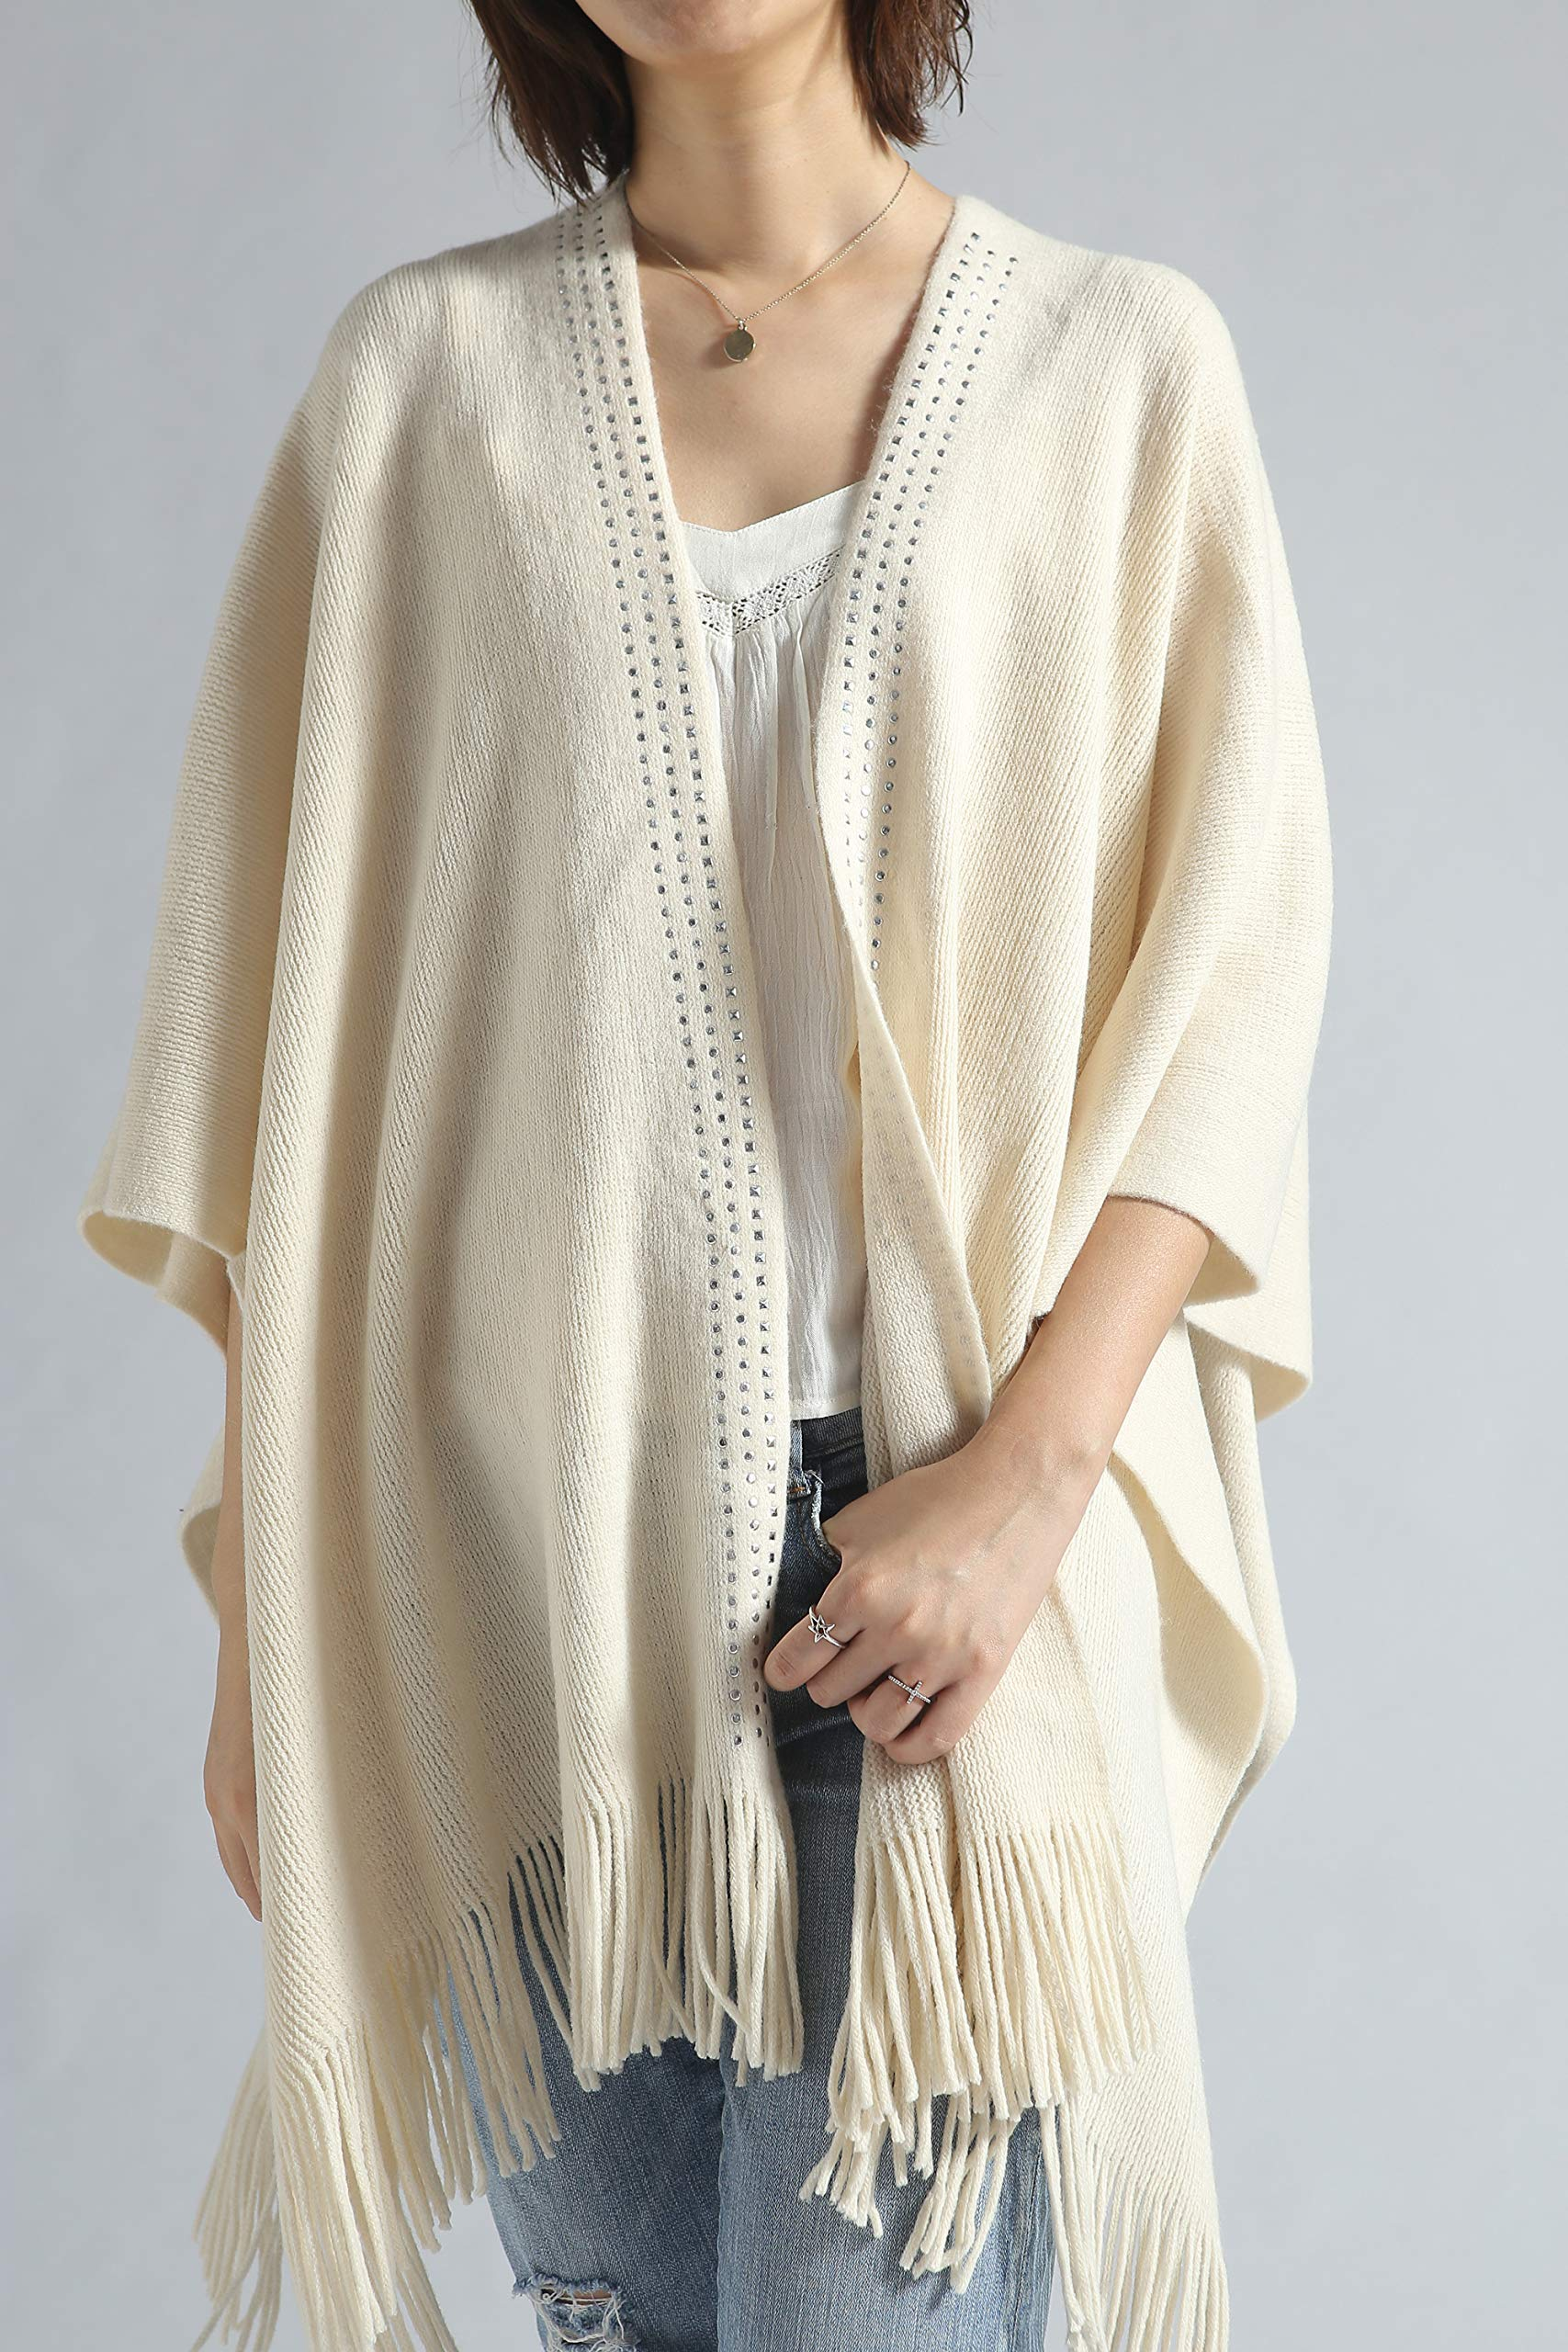 Women Poncho Shawl Cardigan Open Front Elegant Cape Wrap by Moss Rose (Image #3)